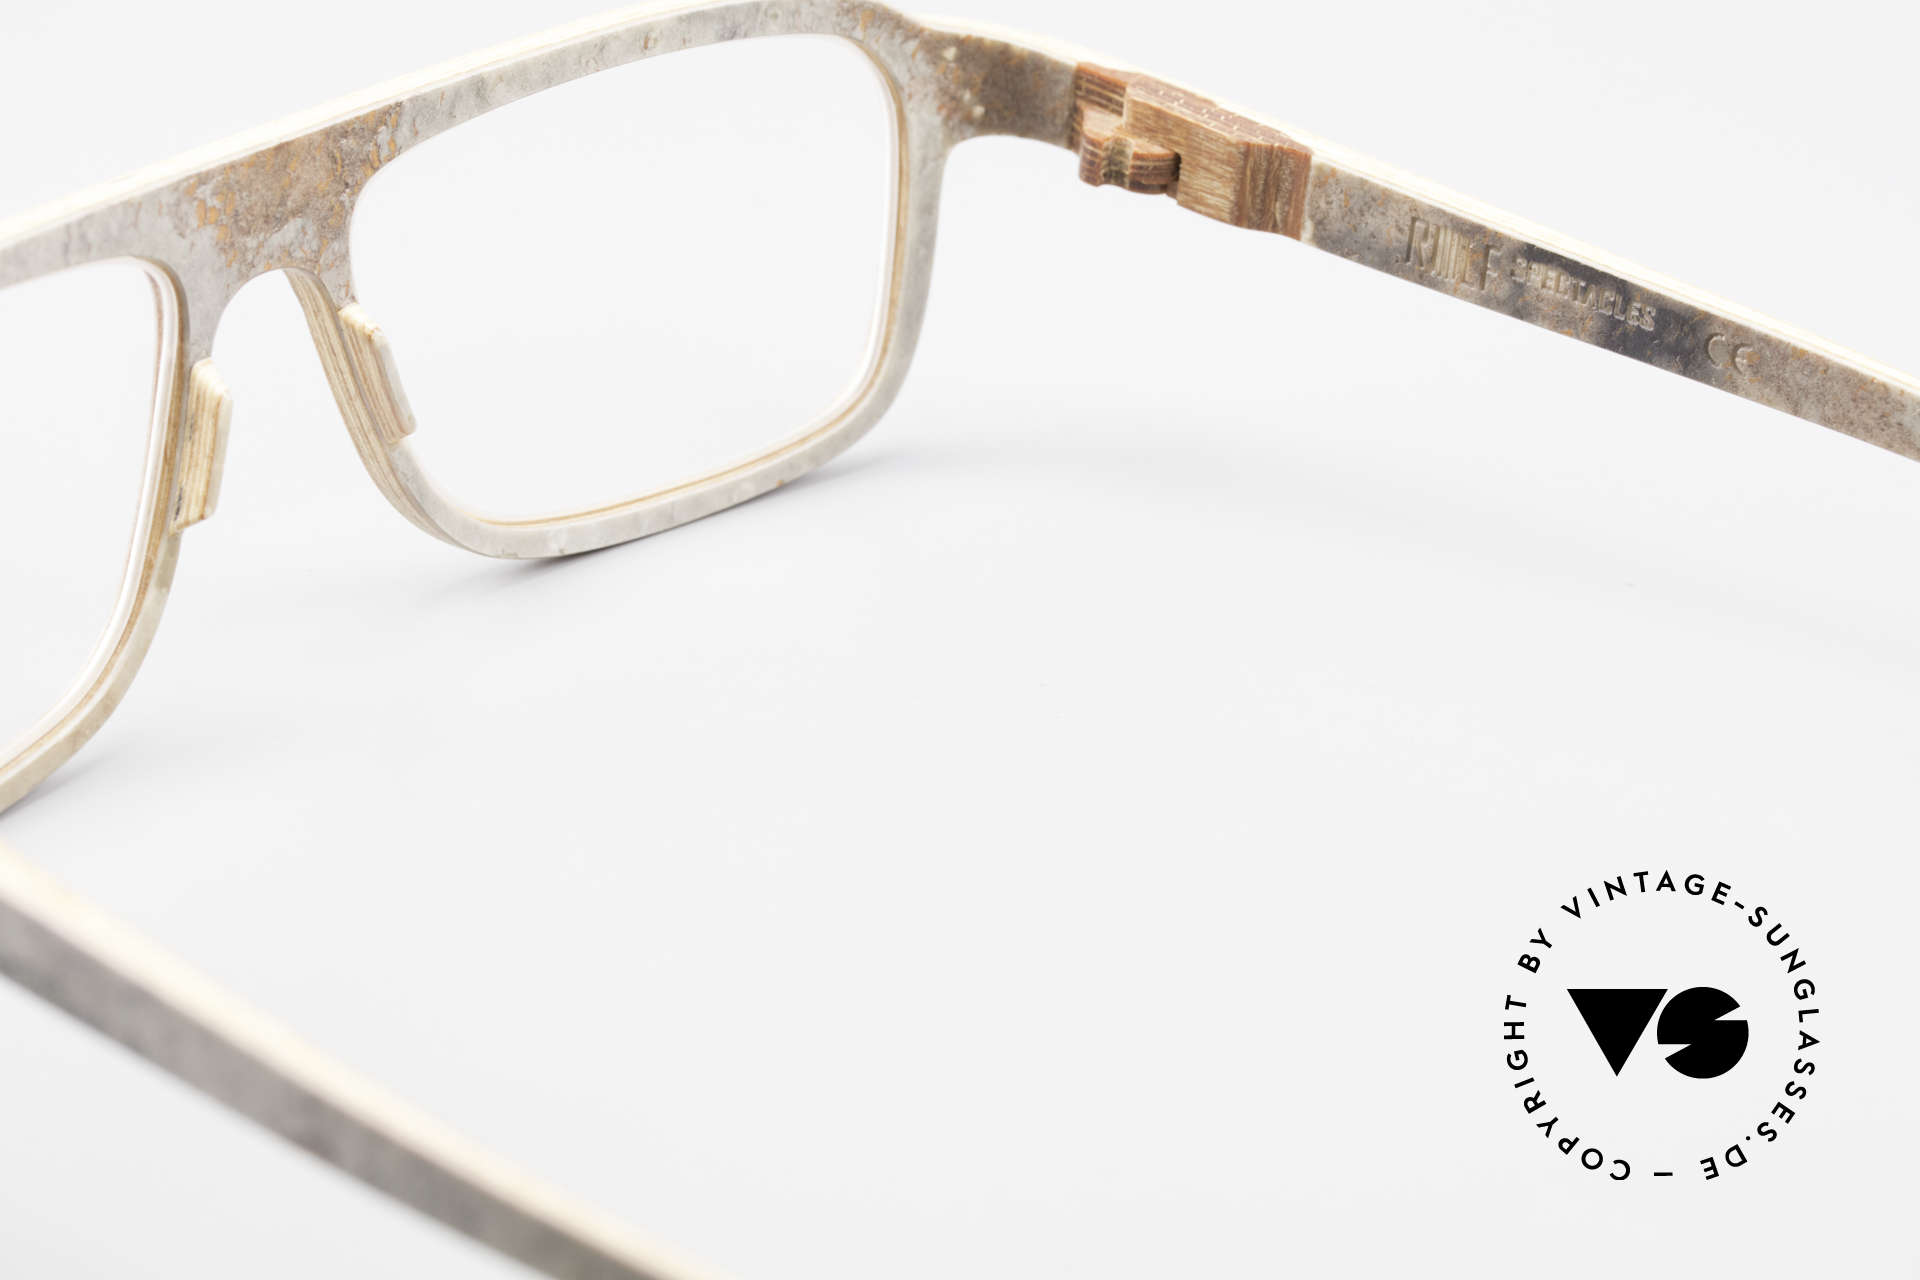 Rolf Spectacles Dino 41 Stone Eyewear & Wood Frame, Size: large, Made for Men